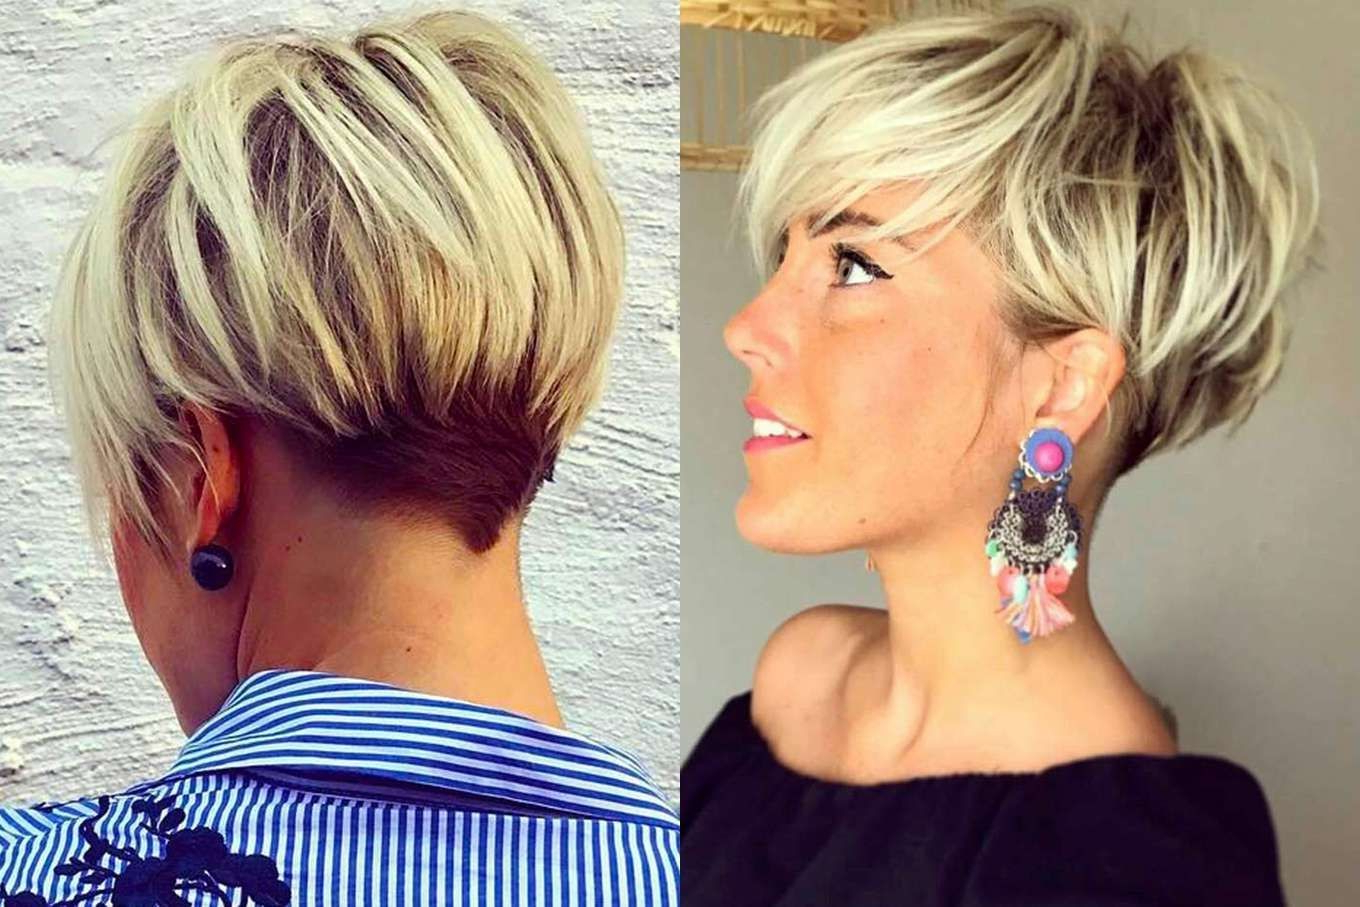 Awesome Short Hairstyles That Cover Ears | Newhairstylegallery Intended For Short Hairstyles Covering Ears (Gallery 17 of 25)